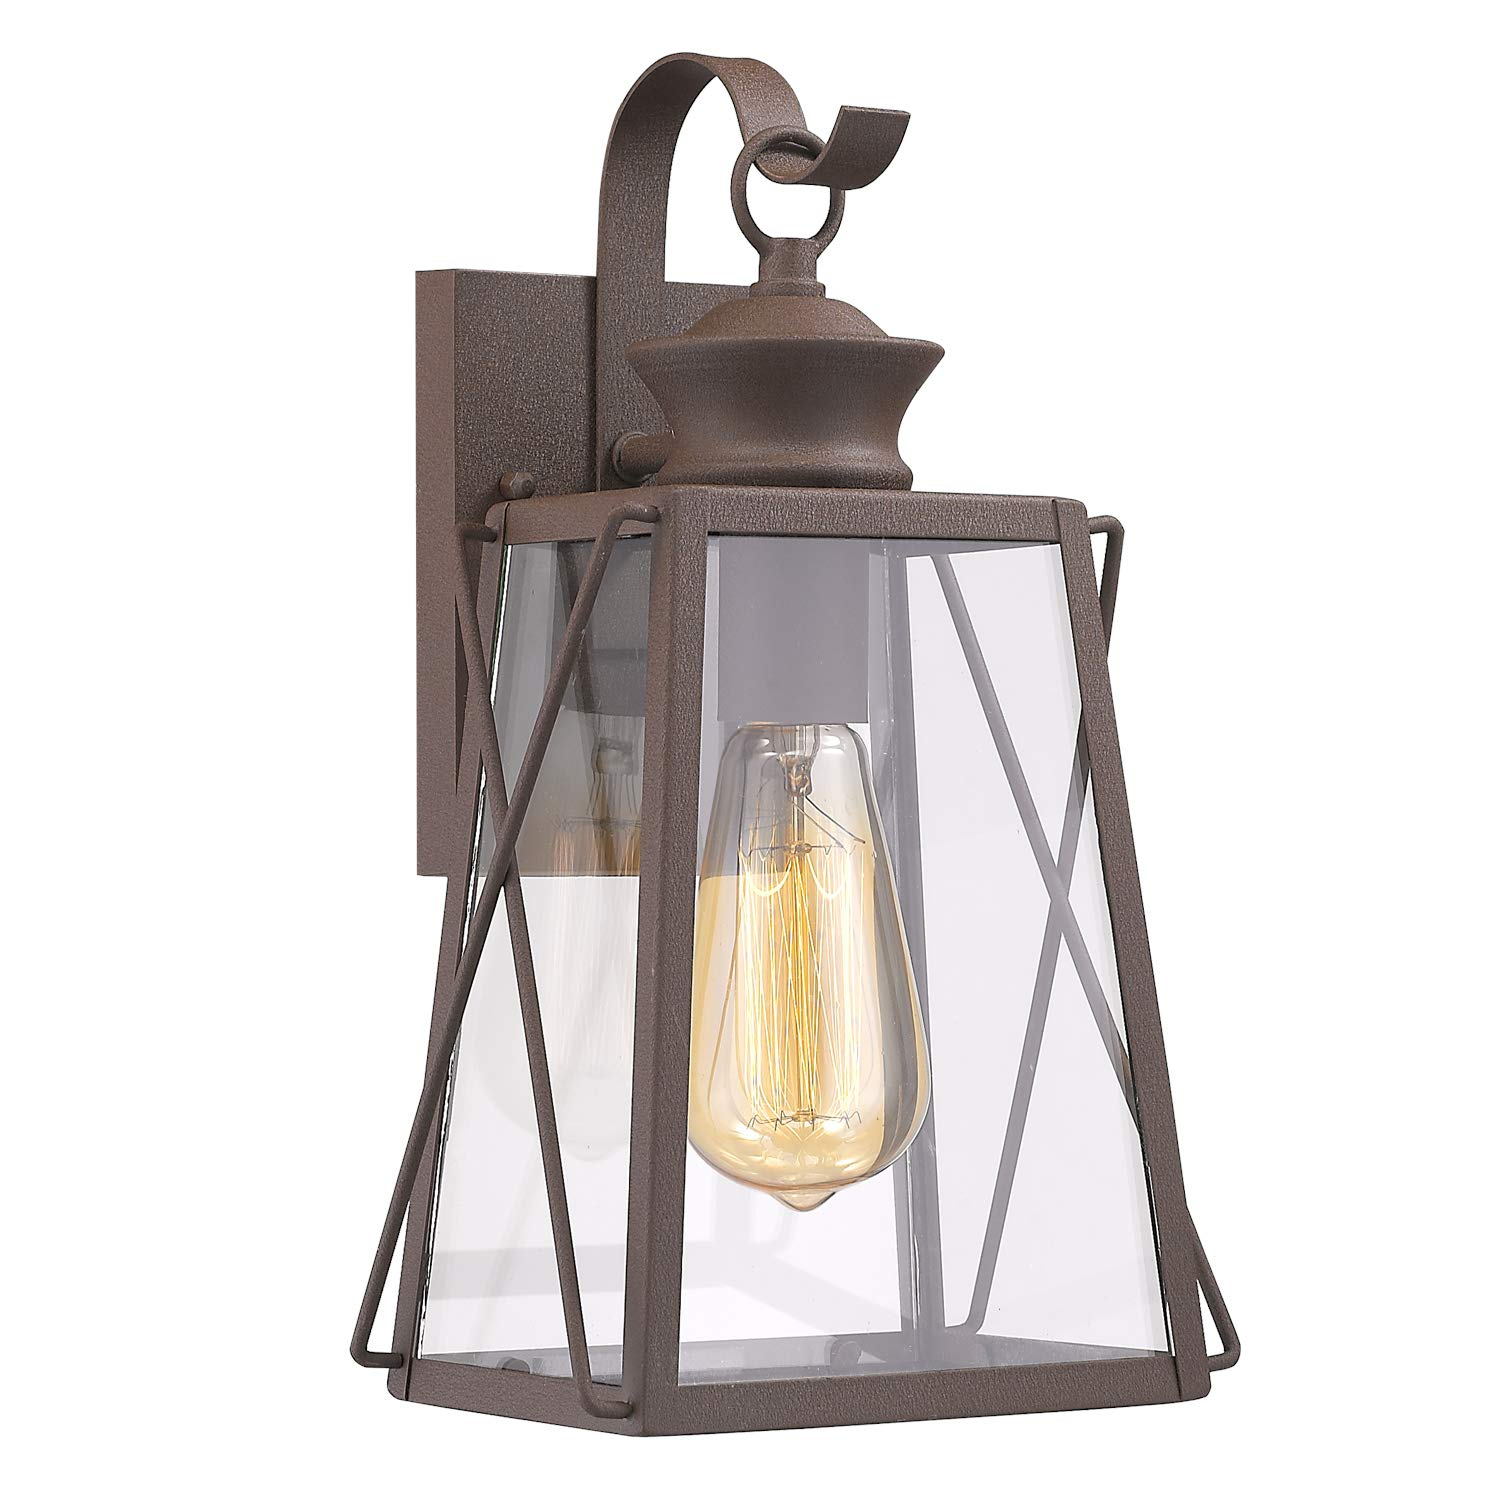 Emliviar outdoor wall lighting fixtures 1 light porch light fixture rustic finish with clear glass shade 1810 cw1 amazon com